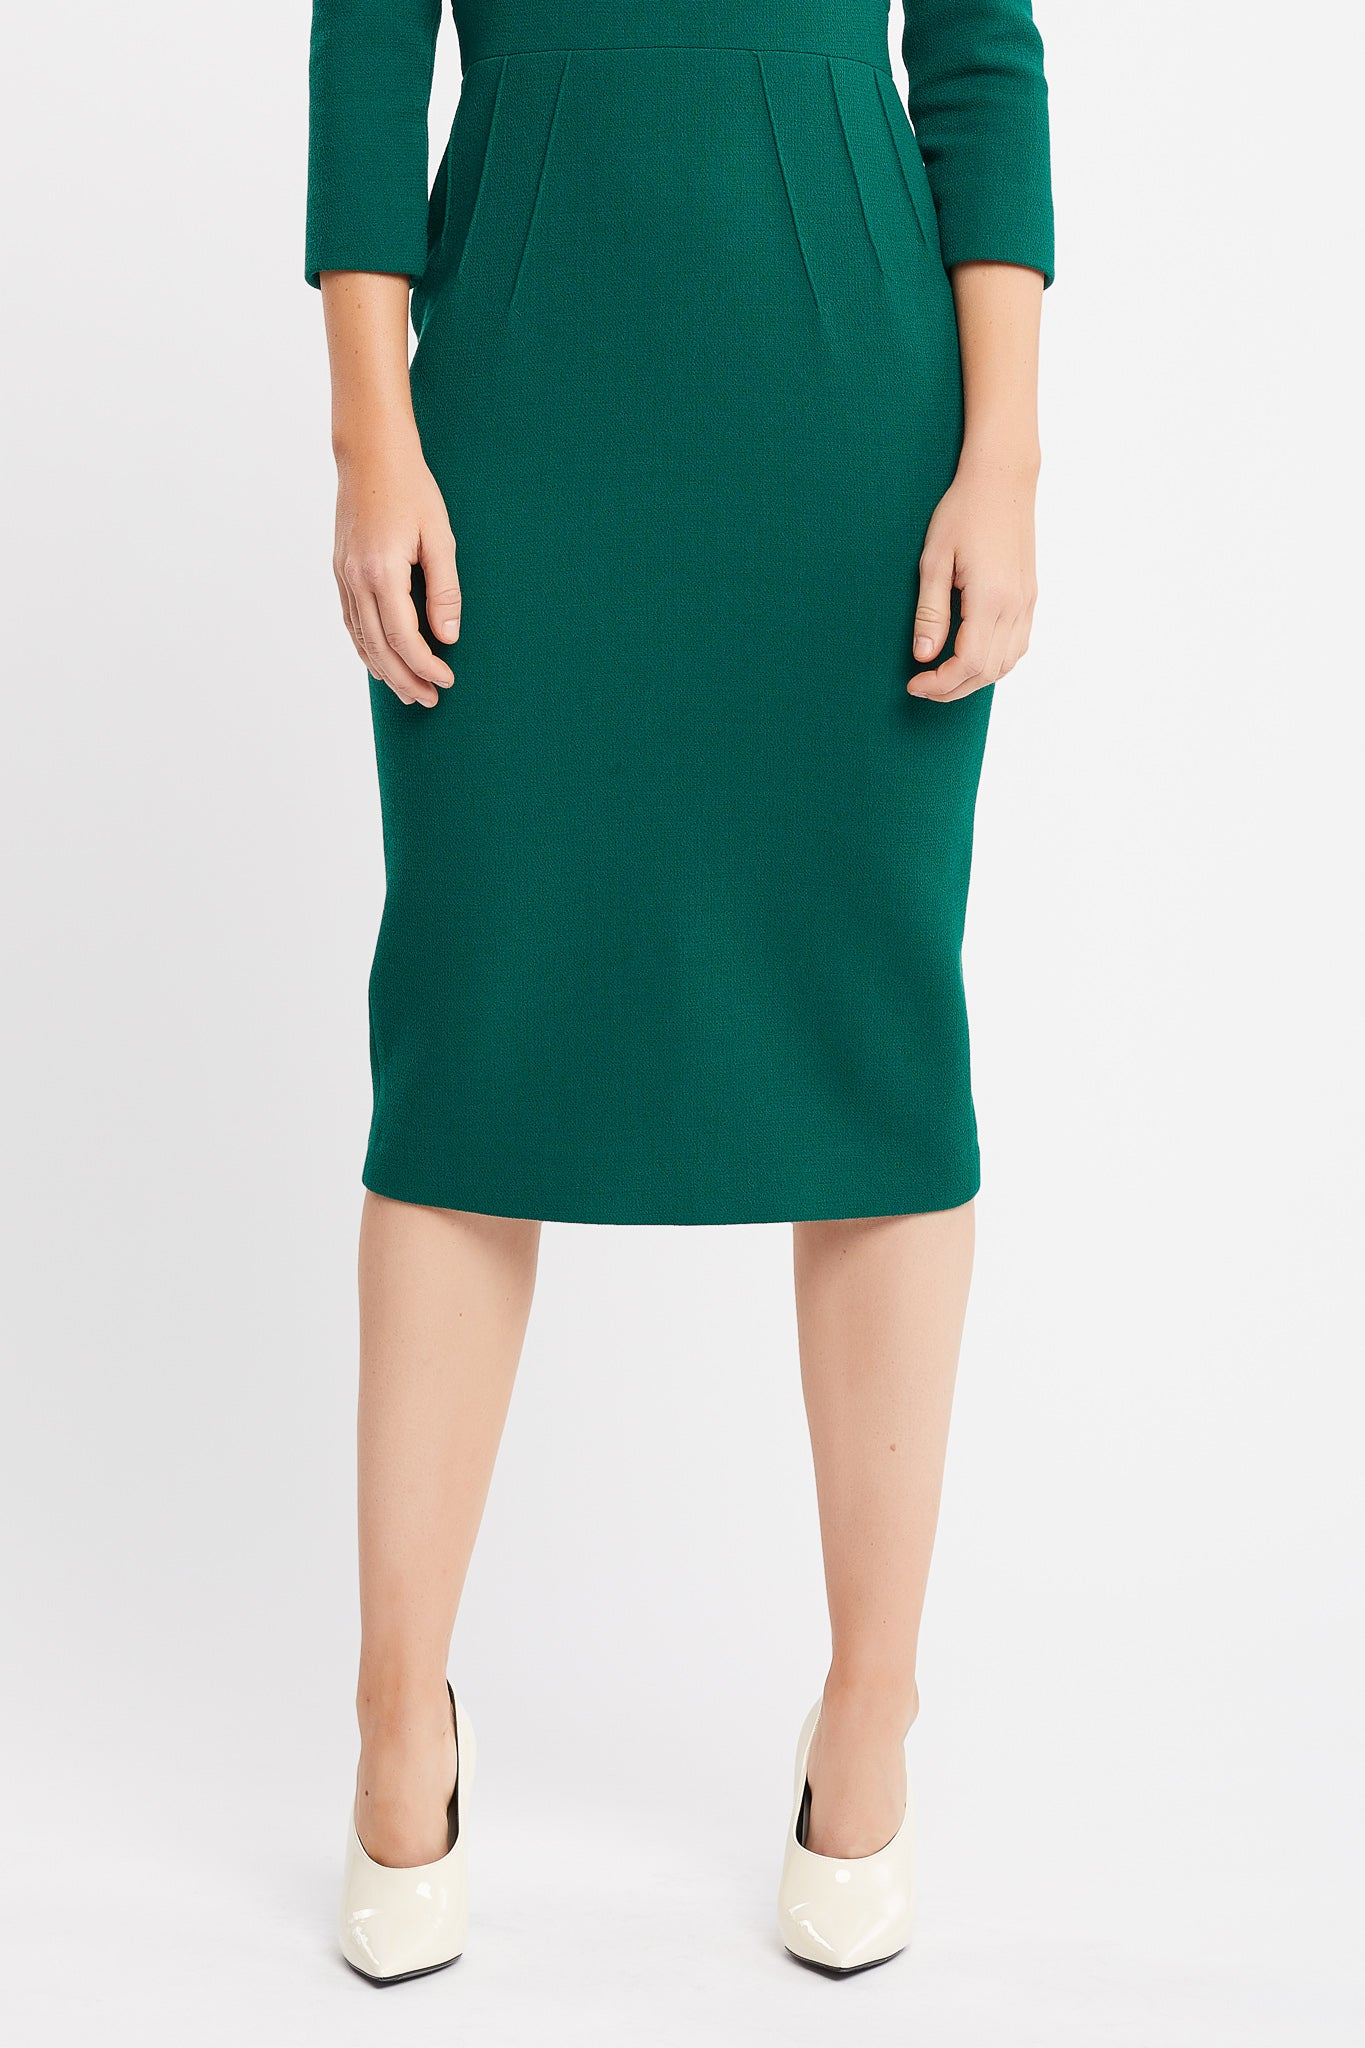 Dalila 3/4 Sleeves Sheath Emerald Work and Cocktail Dress